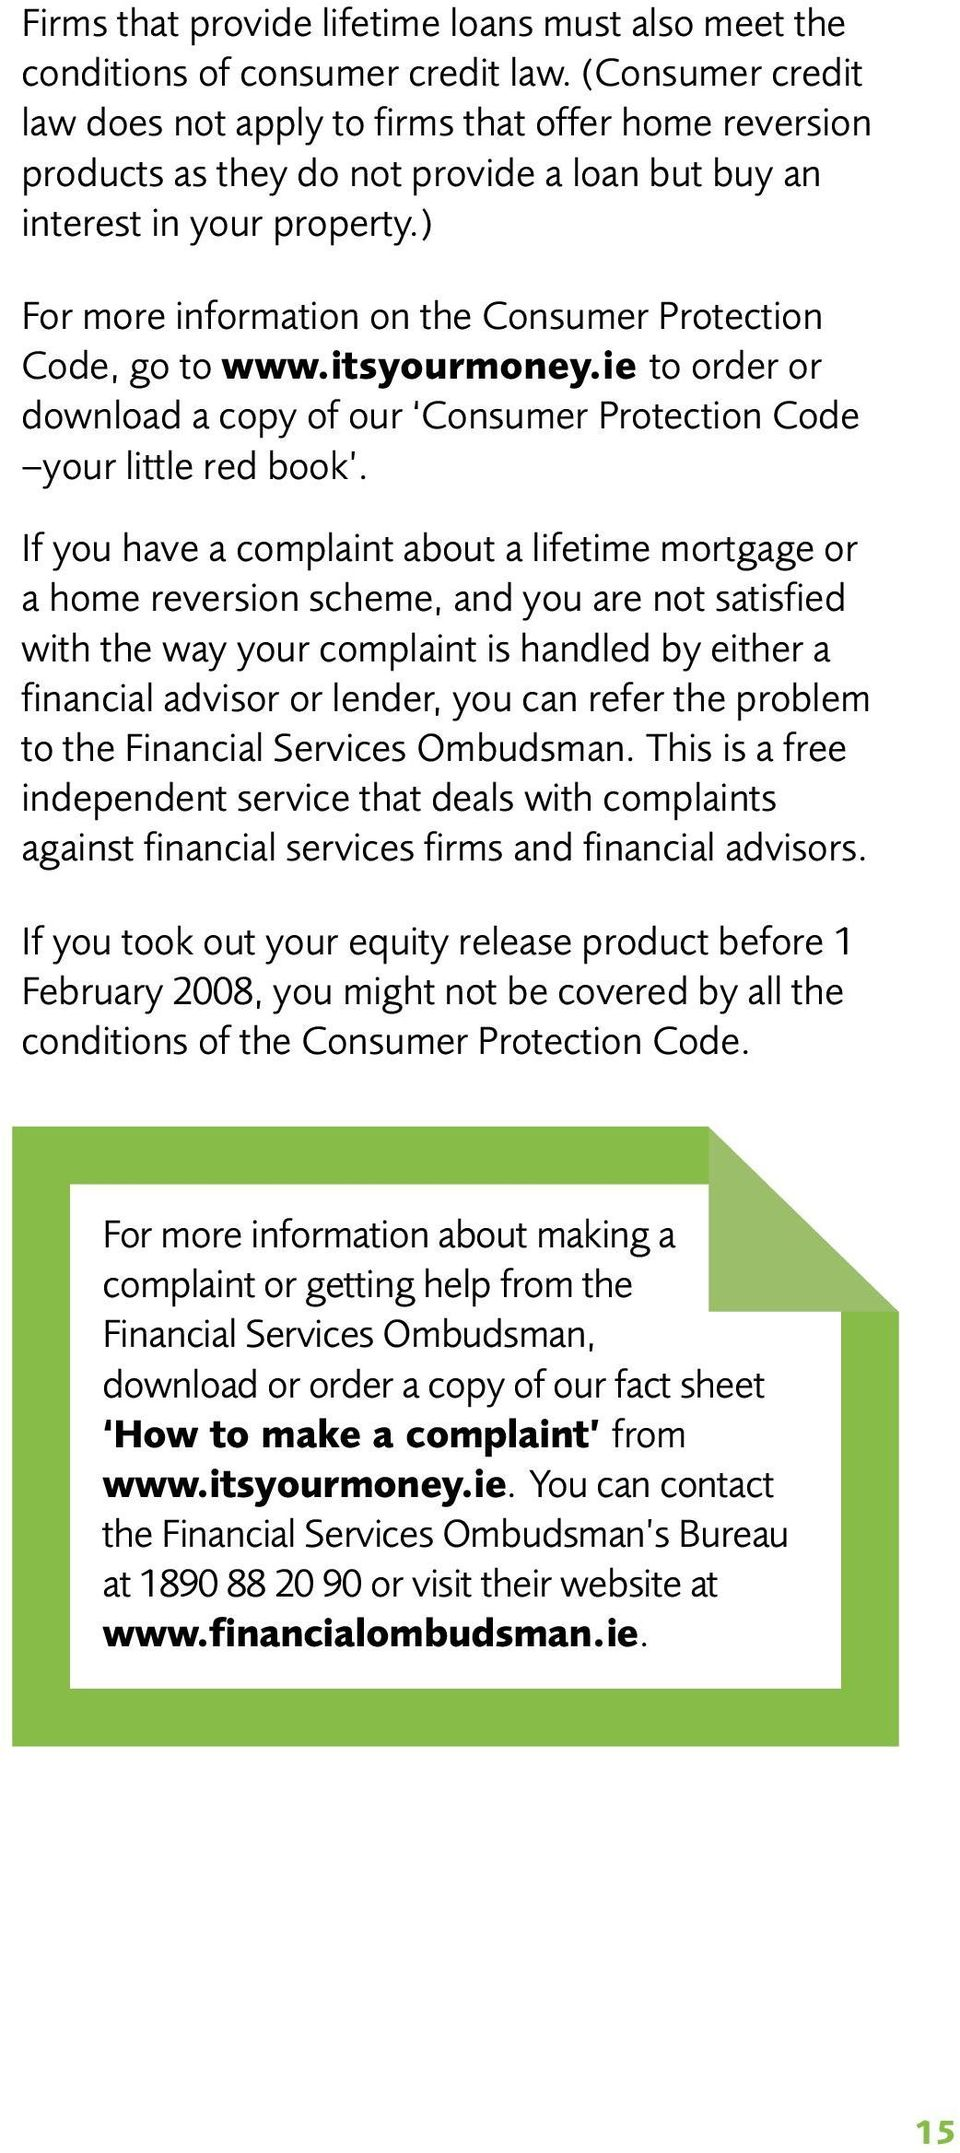 ) For more information on the Consumer Protection Code, go to www.itsyourmoney.ie to order or download a copy of our Consumer Protection Code your little red book.